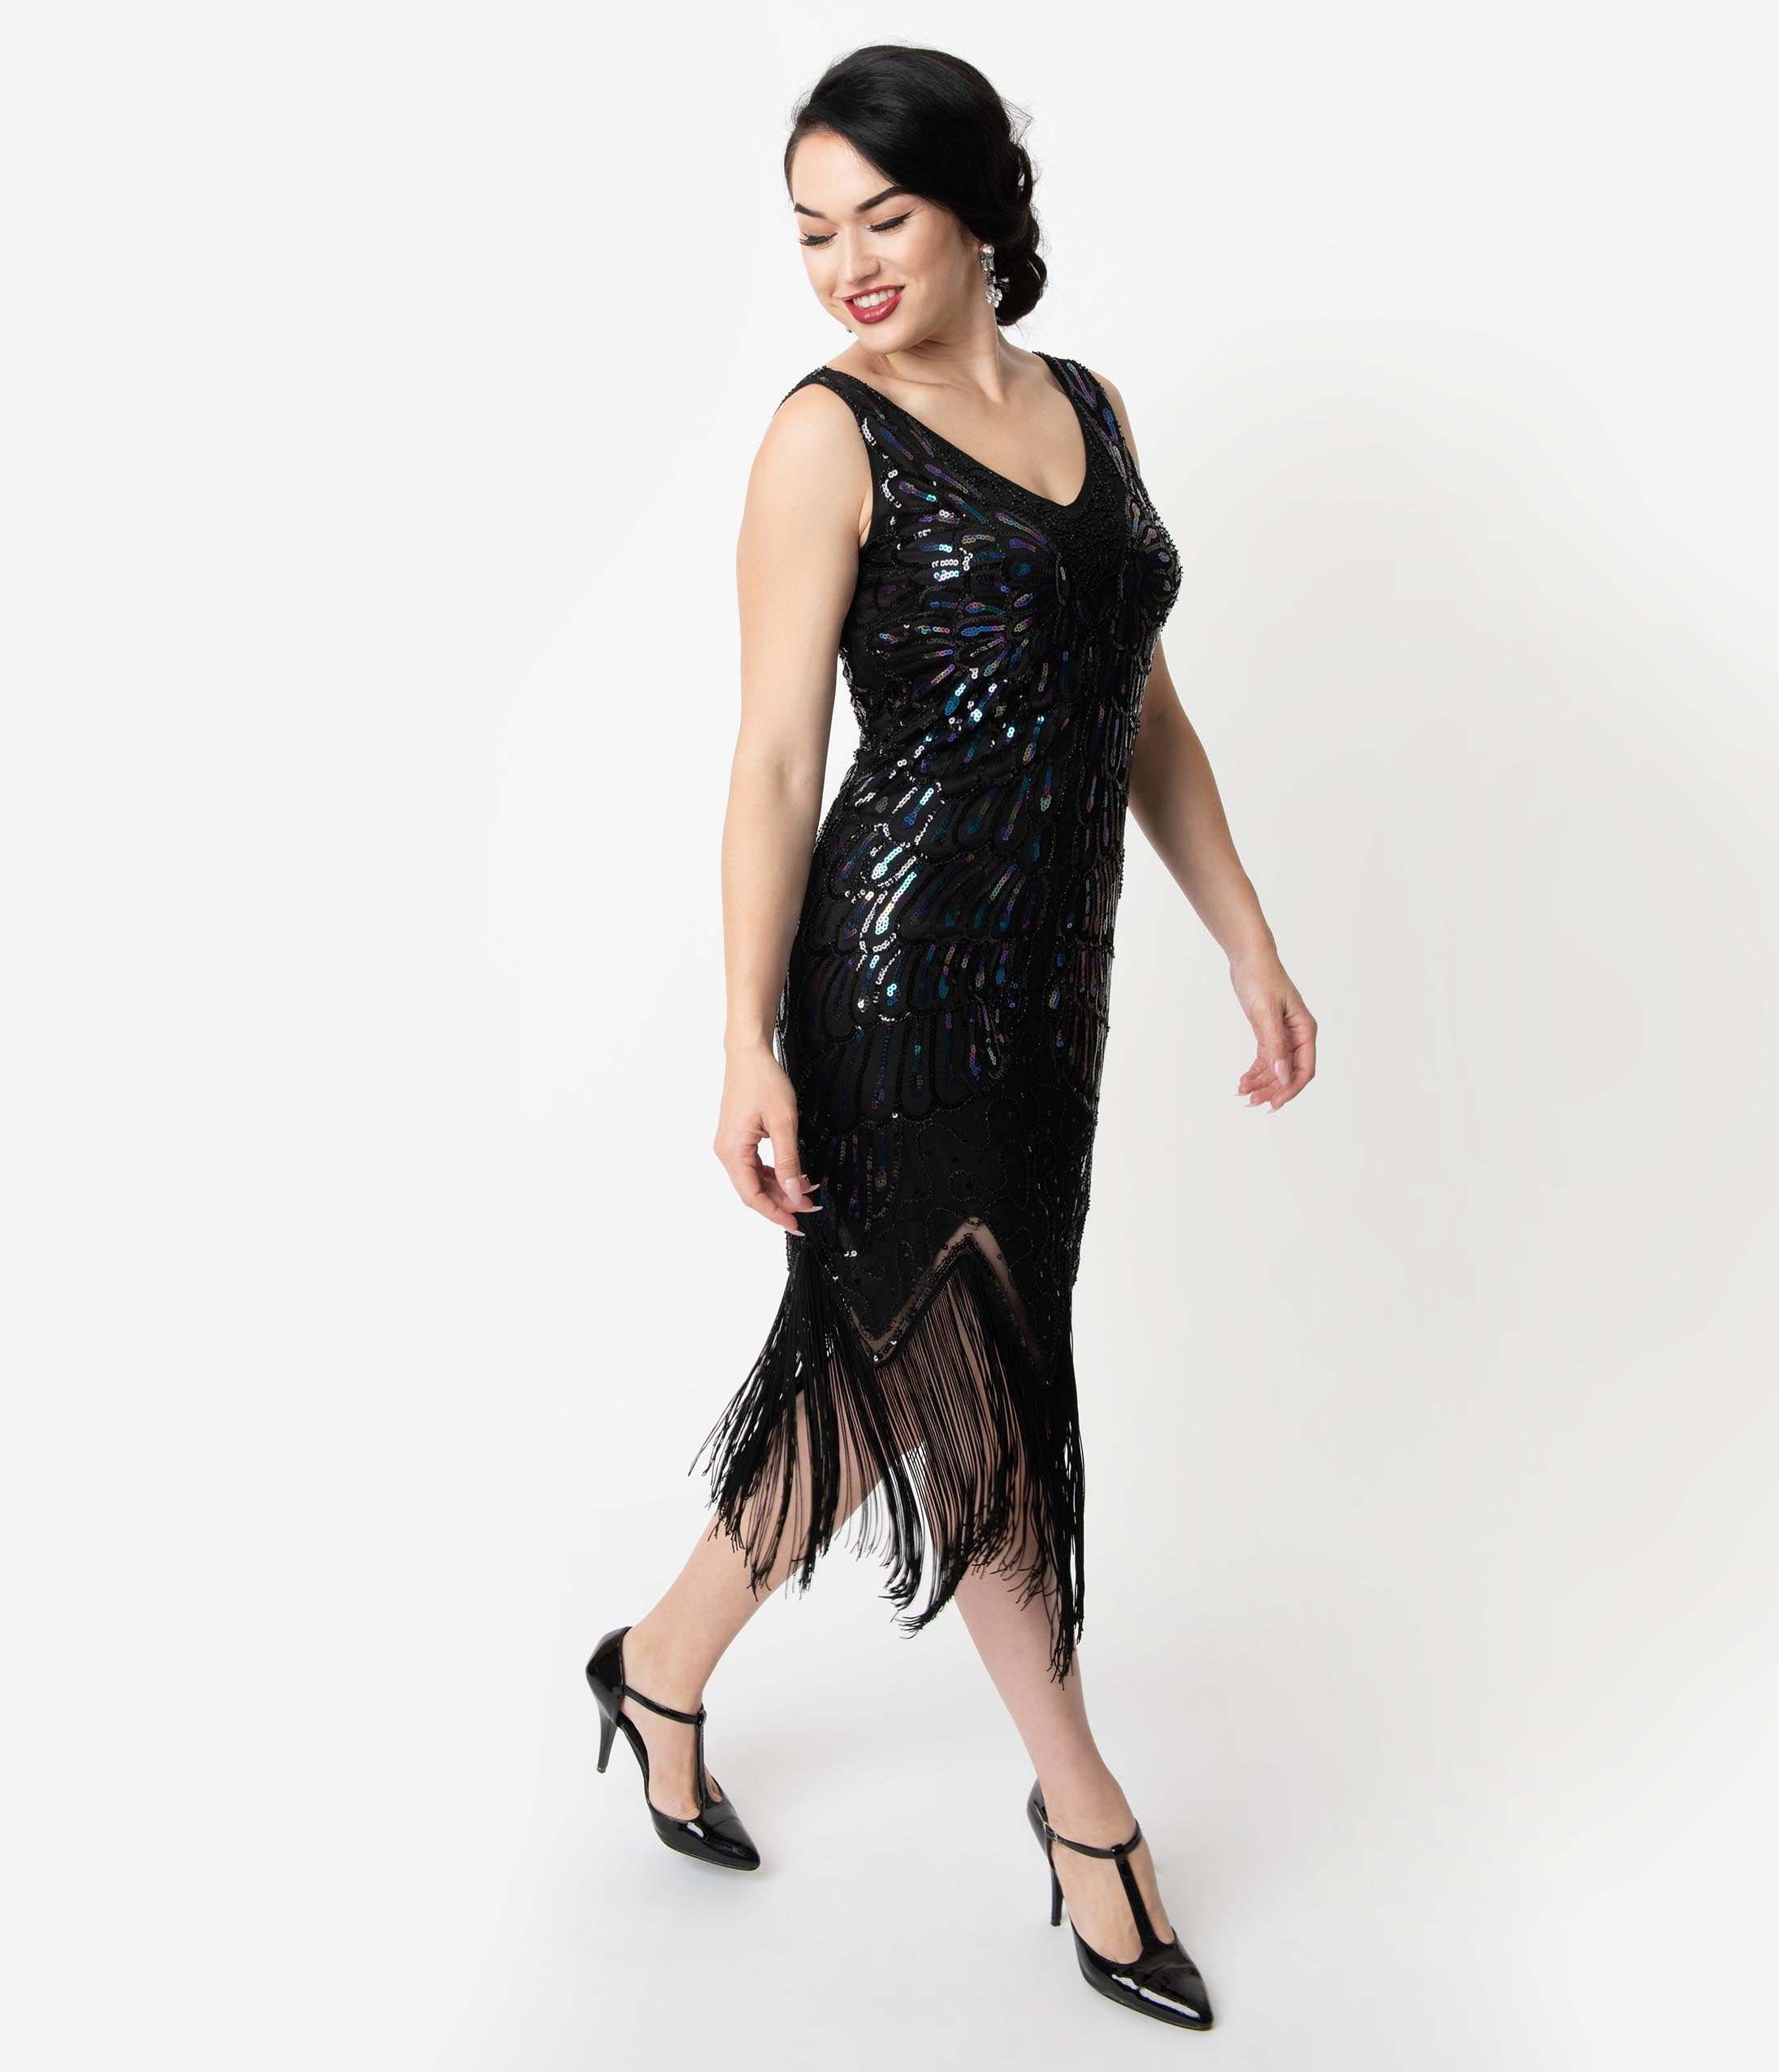 Flapper Dresses & Quality Flapper Costumes Unique Vintage Black Iridescent Sequin Sleeveless Marion Flapper Dress $88.00 AT vintagedancer.com